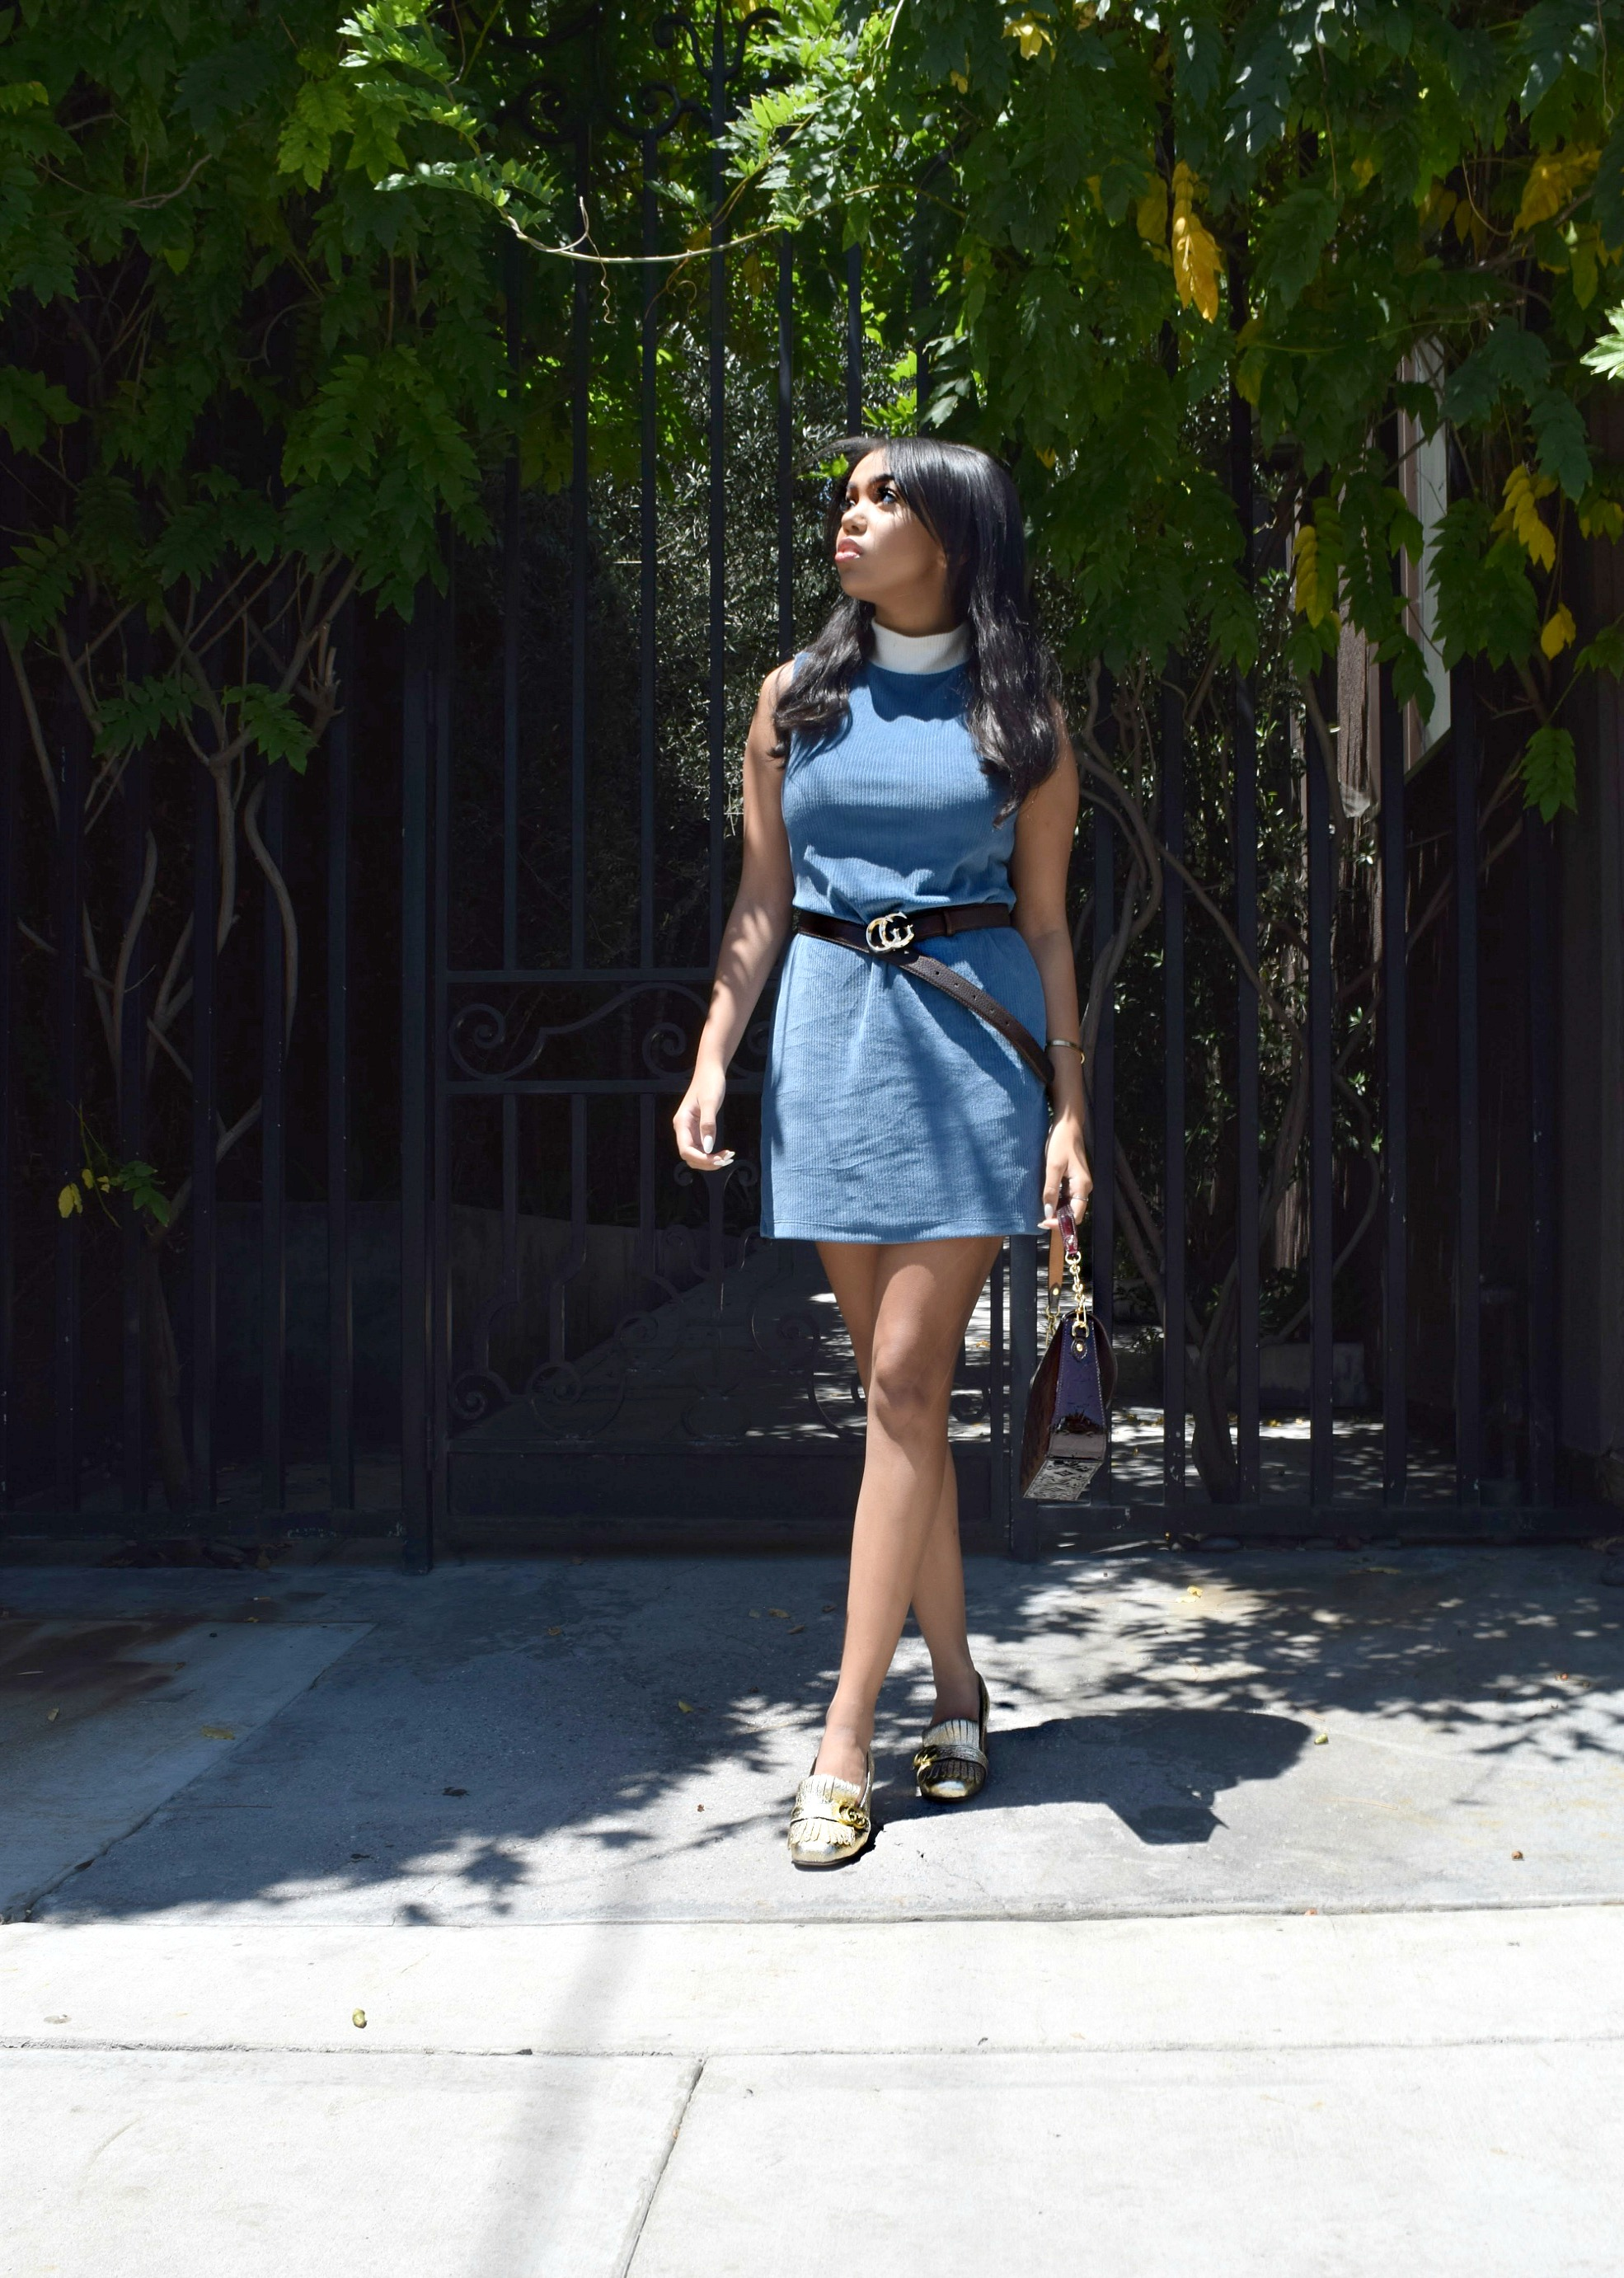 Staud Clothing Dress, Los Angeles Spring/Summer Mod Street Style: To Style, With Love